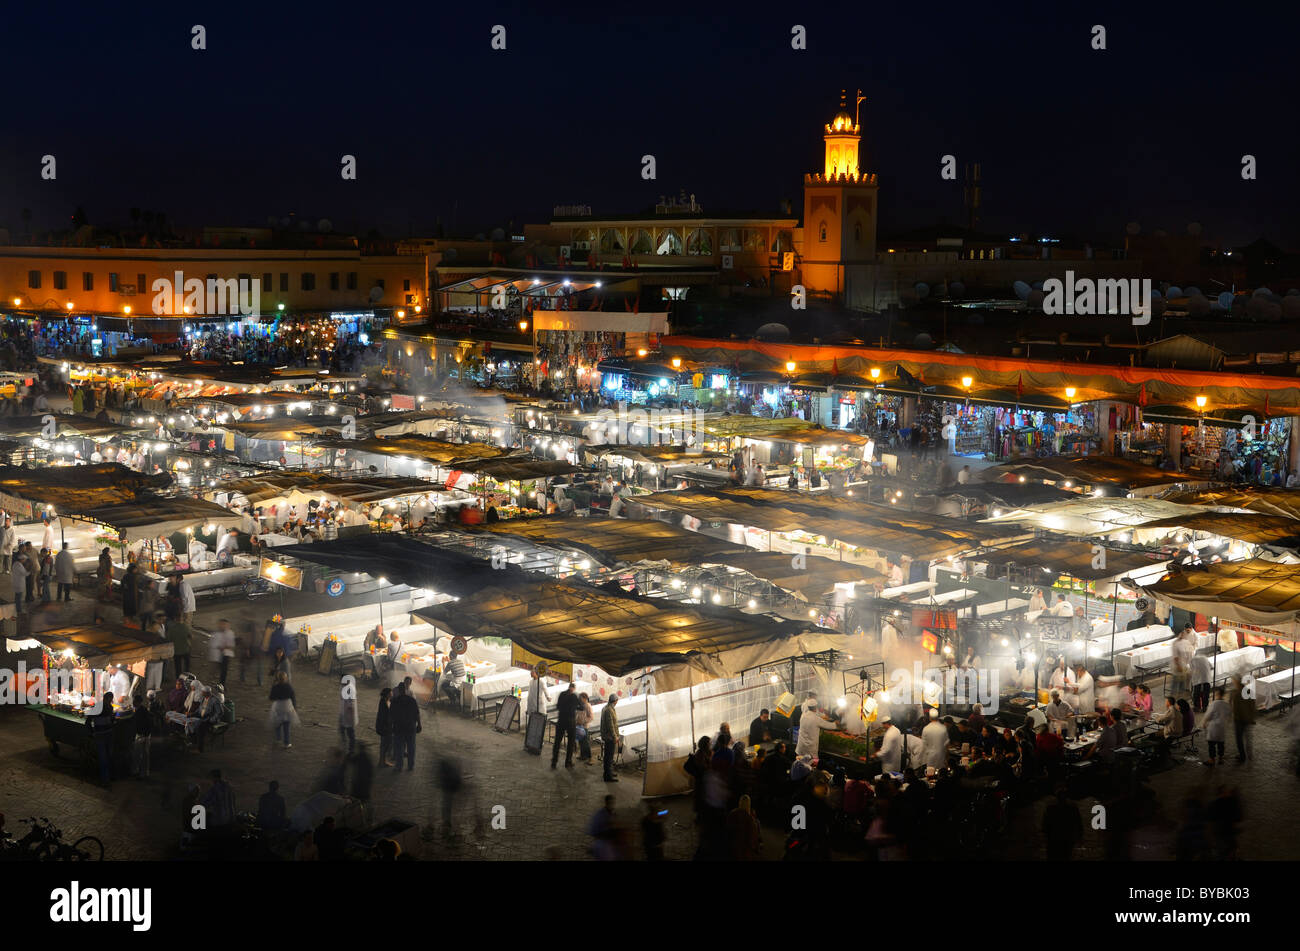 Crowds at the food vendors at night in Place Djemaa el Fna square souk in Marrakech Morocco - Stock Image